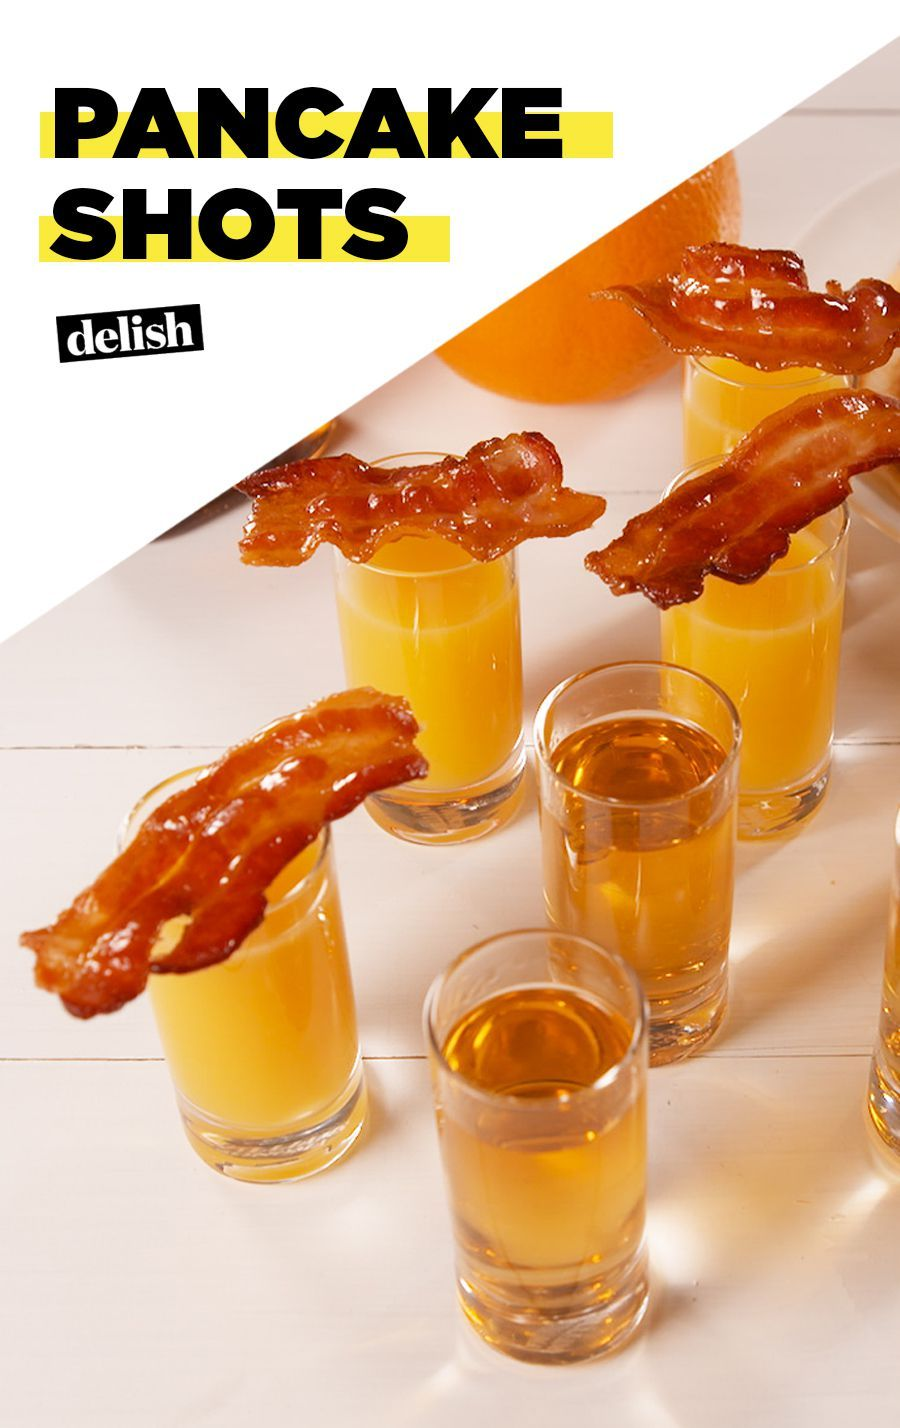 These Whiskey Shots Taste Just Like Pancakes Recipe Drinks Alcohol Recipes Breakfast Cocktails Alcohol Drink Recipes